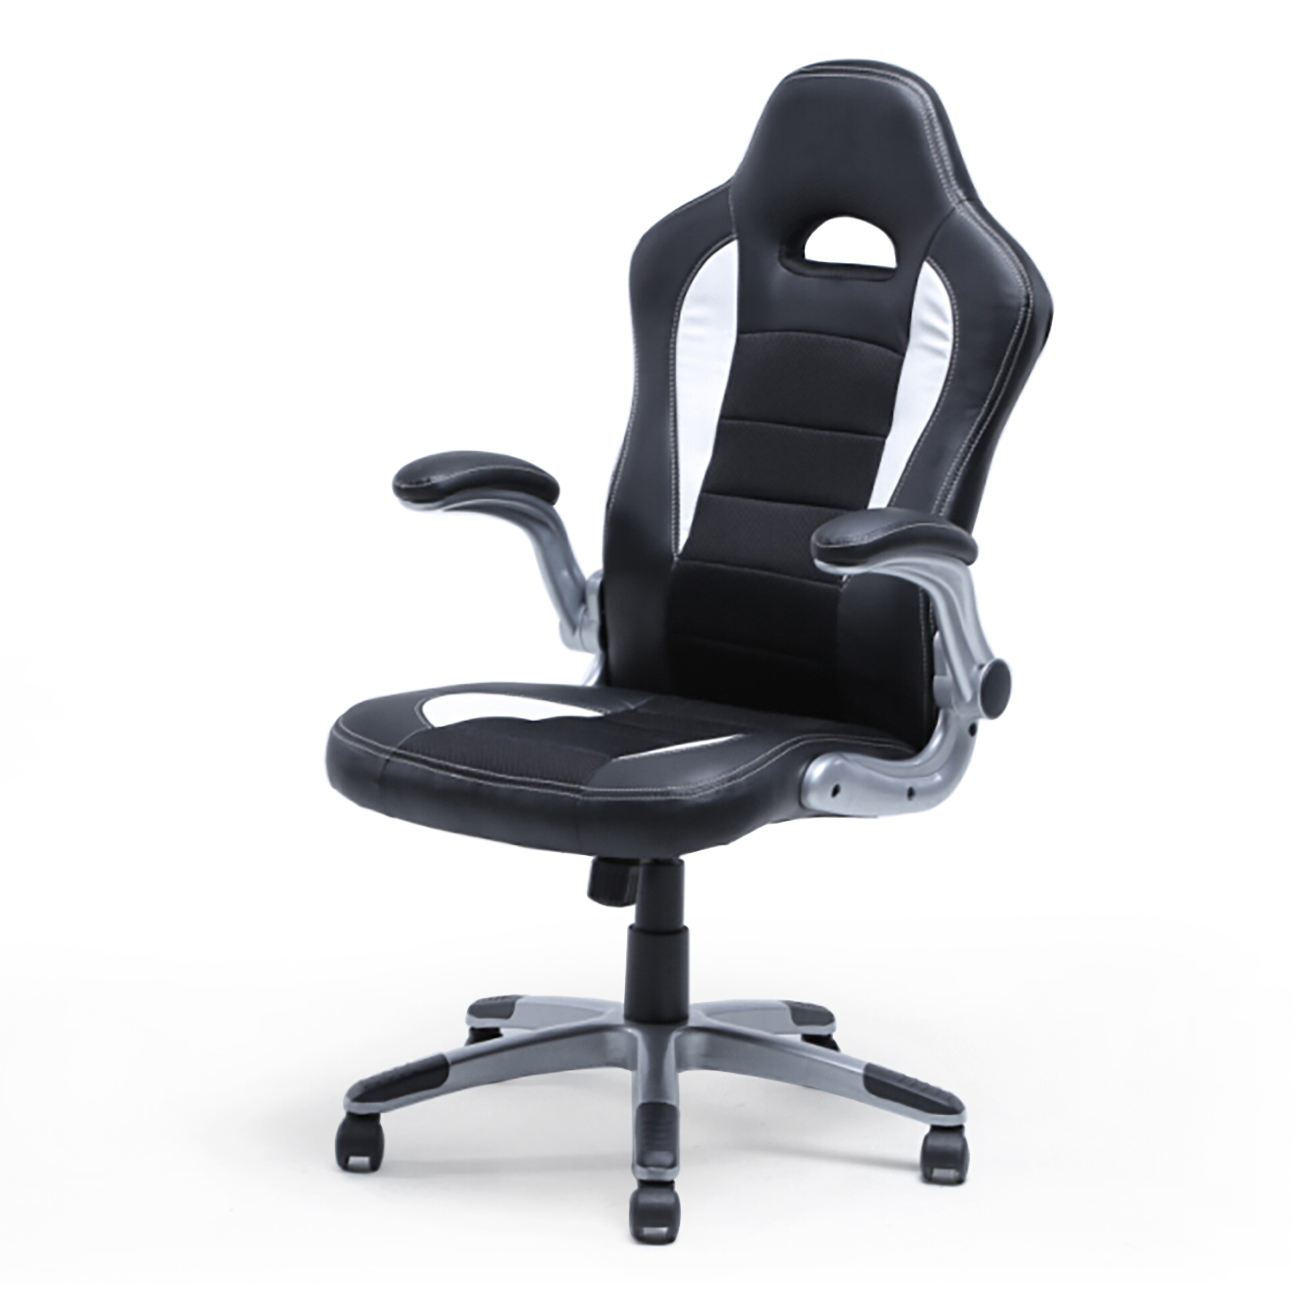 Office Racing Chair Bucket Seat High Back Ergonomic Gaming